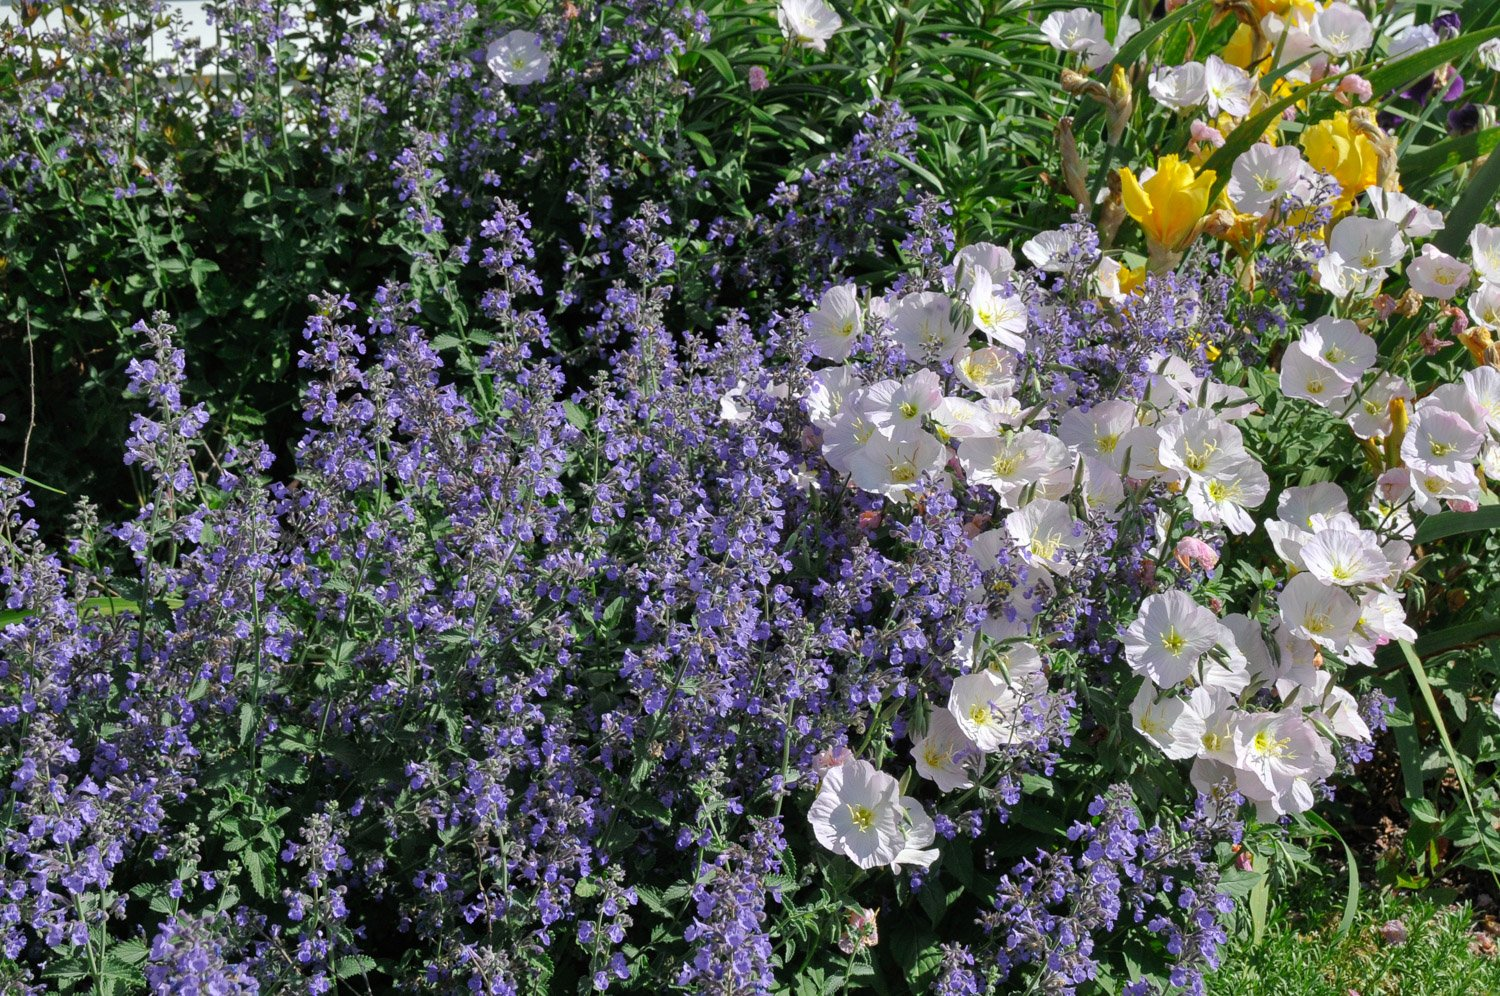 Blooming Catmint 'Walkers Low' intermingled with Primroses